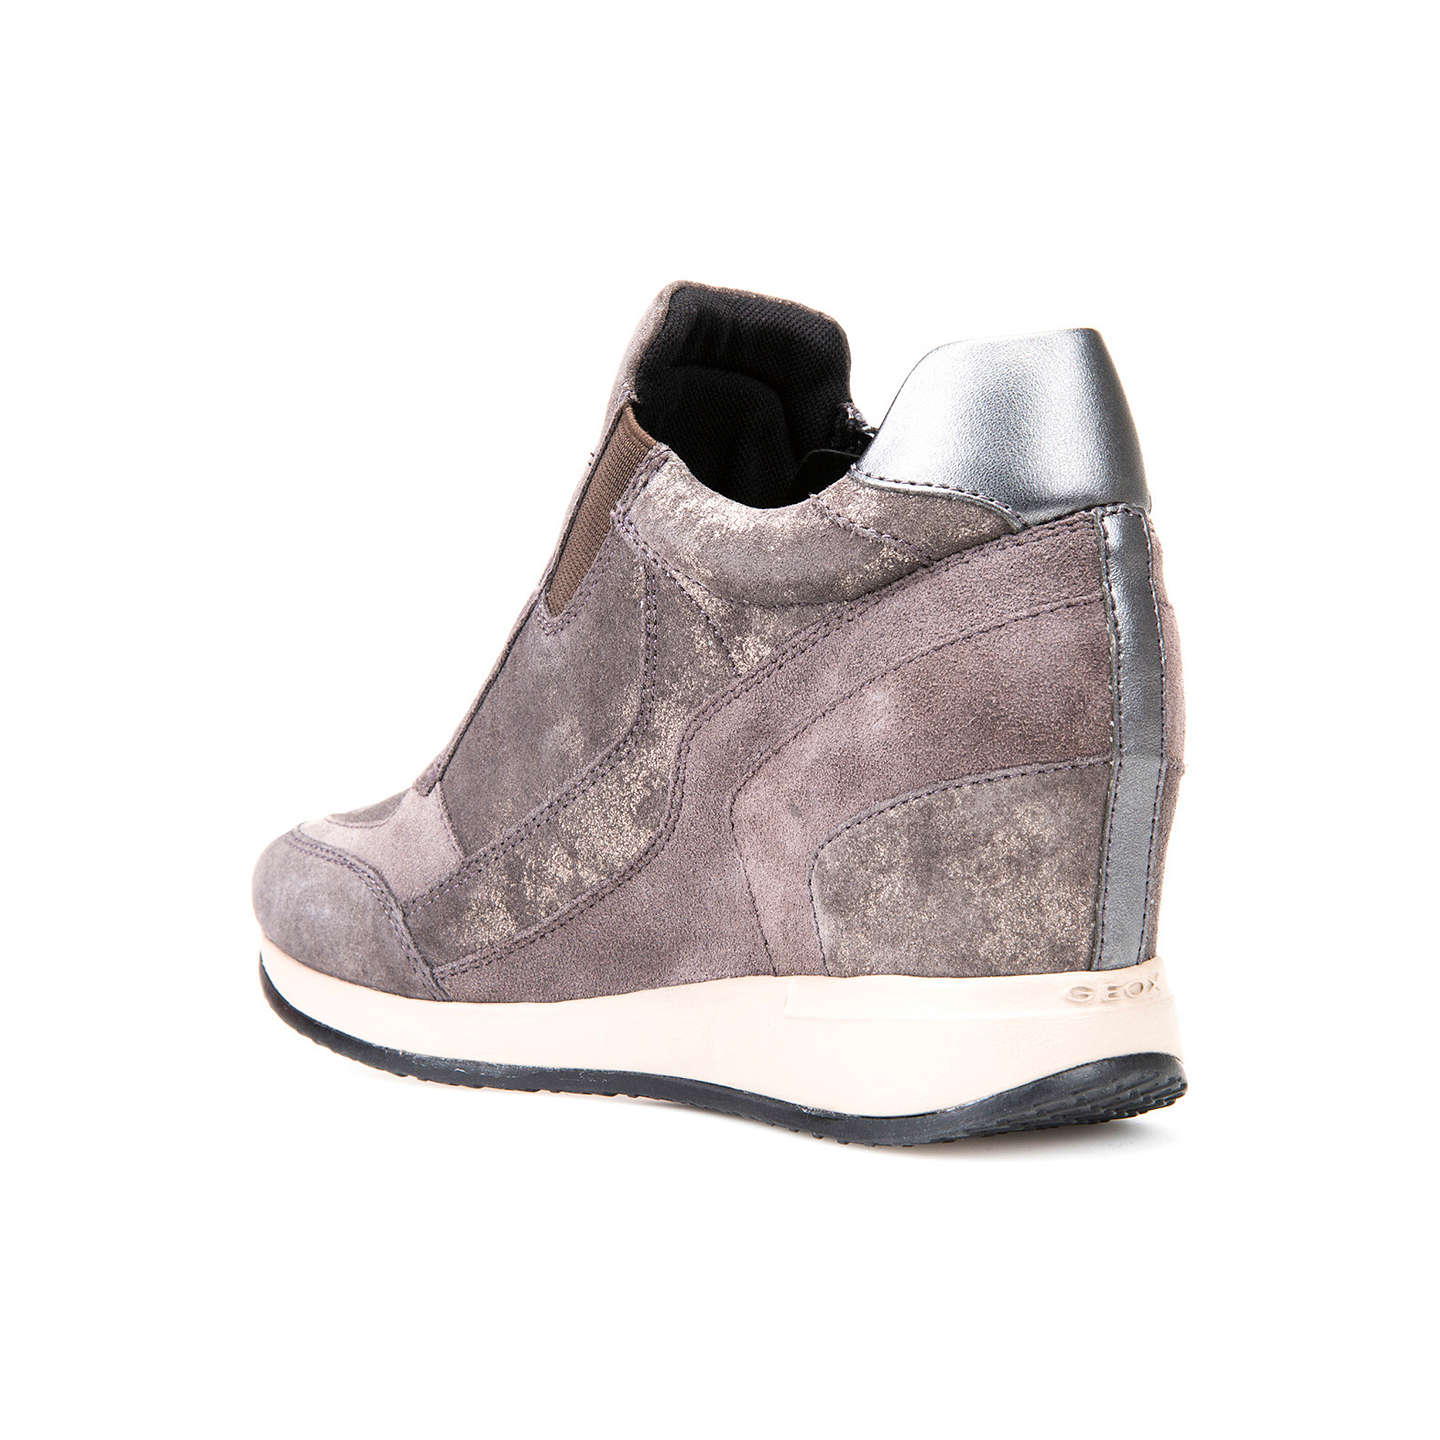 BuyGeox Nydame Wedge Heeled Zip Up Trainers, Dark Grey, 7 Online at johnlewis.com